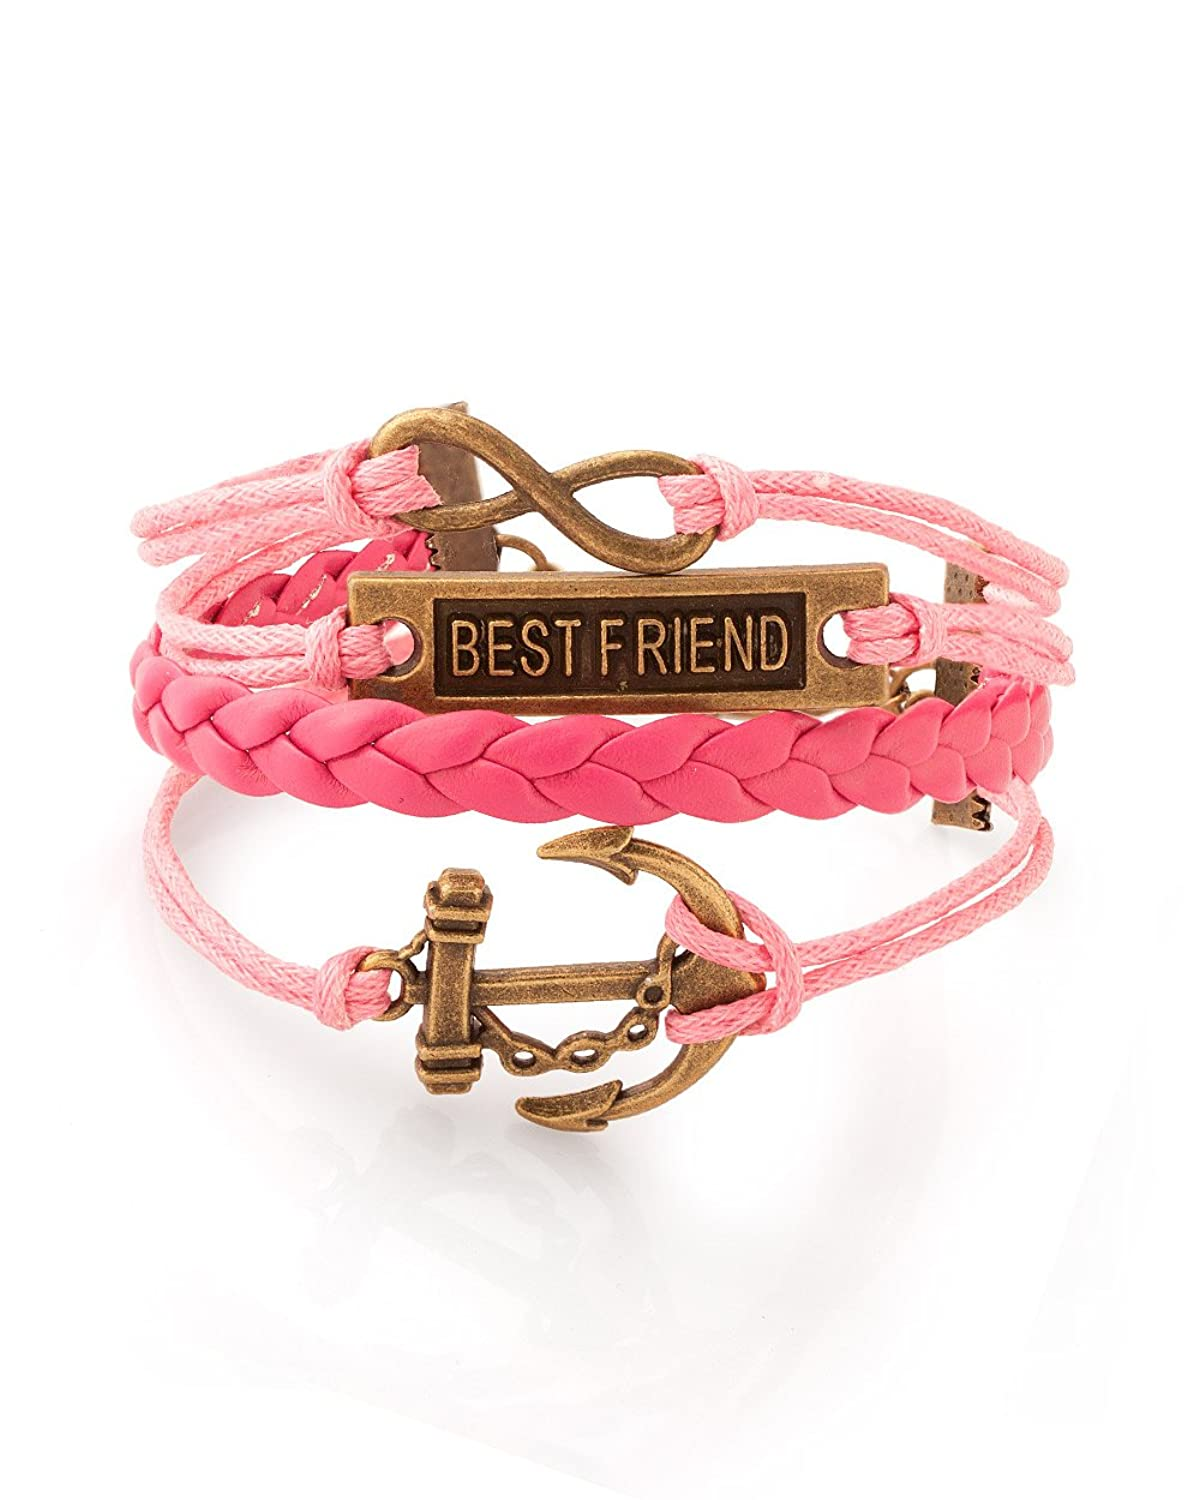 friendship in bands tag absorbed words